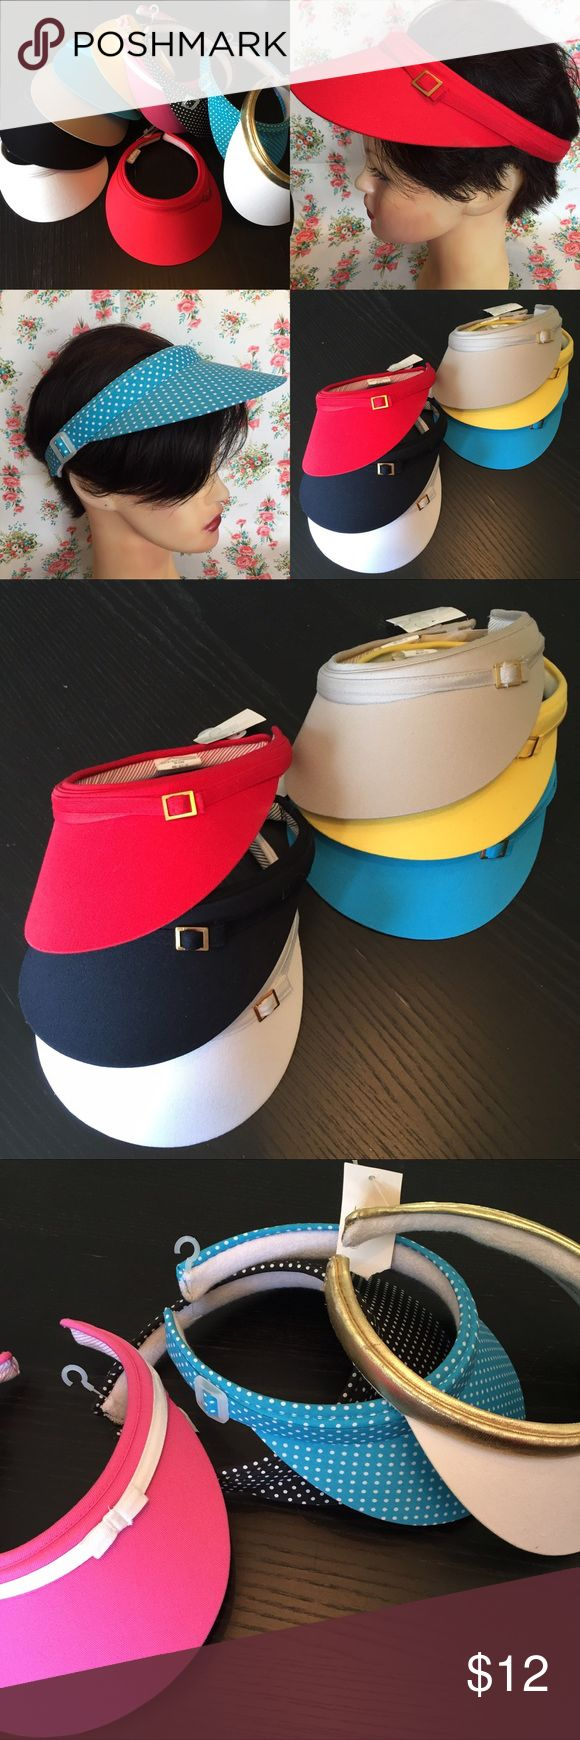 Vintage new sun Visors hats pick your color New old stock cute and practical sun visors. New with tags, Blue/teal is missing its tag.  This listing is for one please pick your color slight differences in hardware.  small gold buckle comes in, Red black white tan yellow or blue Pink has white trim and small bow. white with gold trim  clear buckle come in, blue polkadot or black polkadot. Vintage Accessories Hats